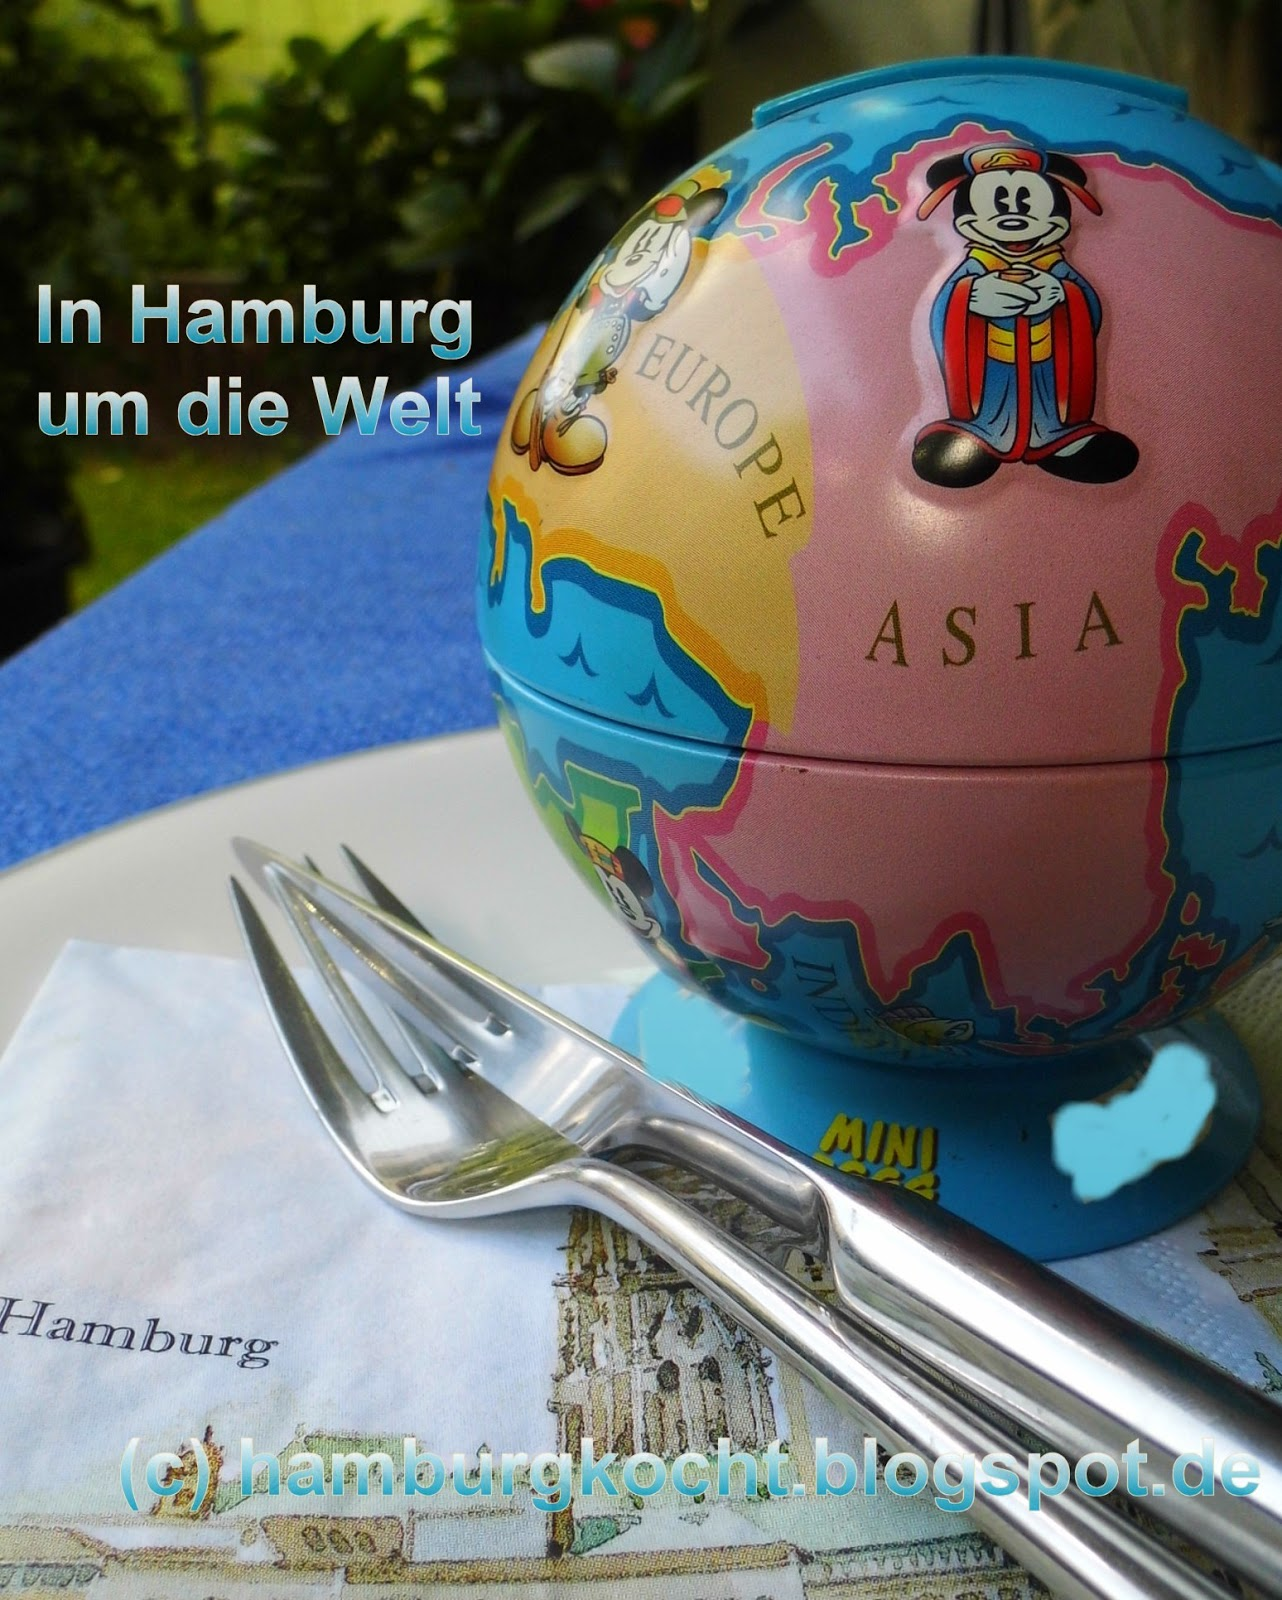 Blog-Event In Hamburg um die Welt